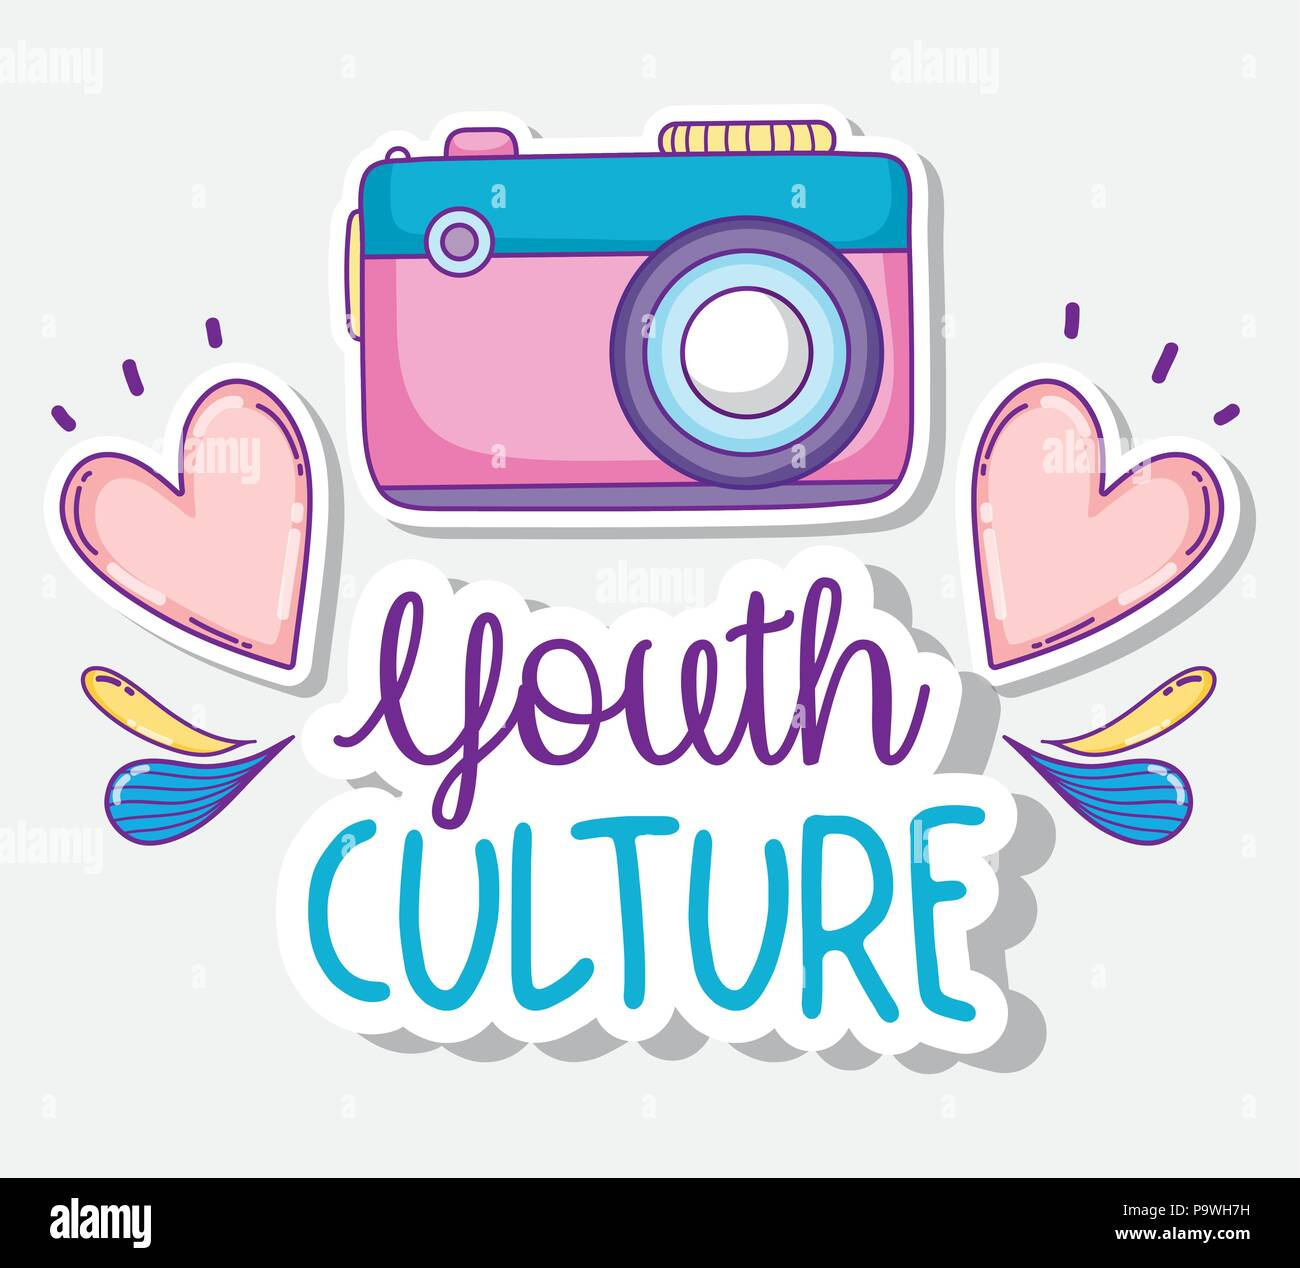 Youth culture cartoons - Stock Image